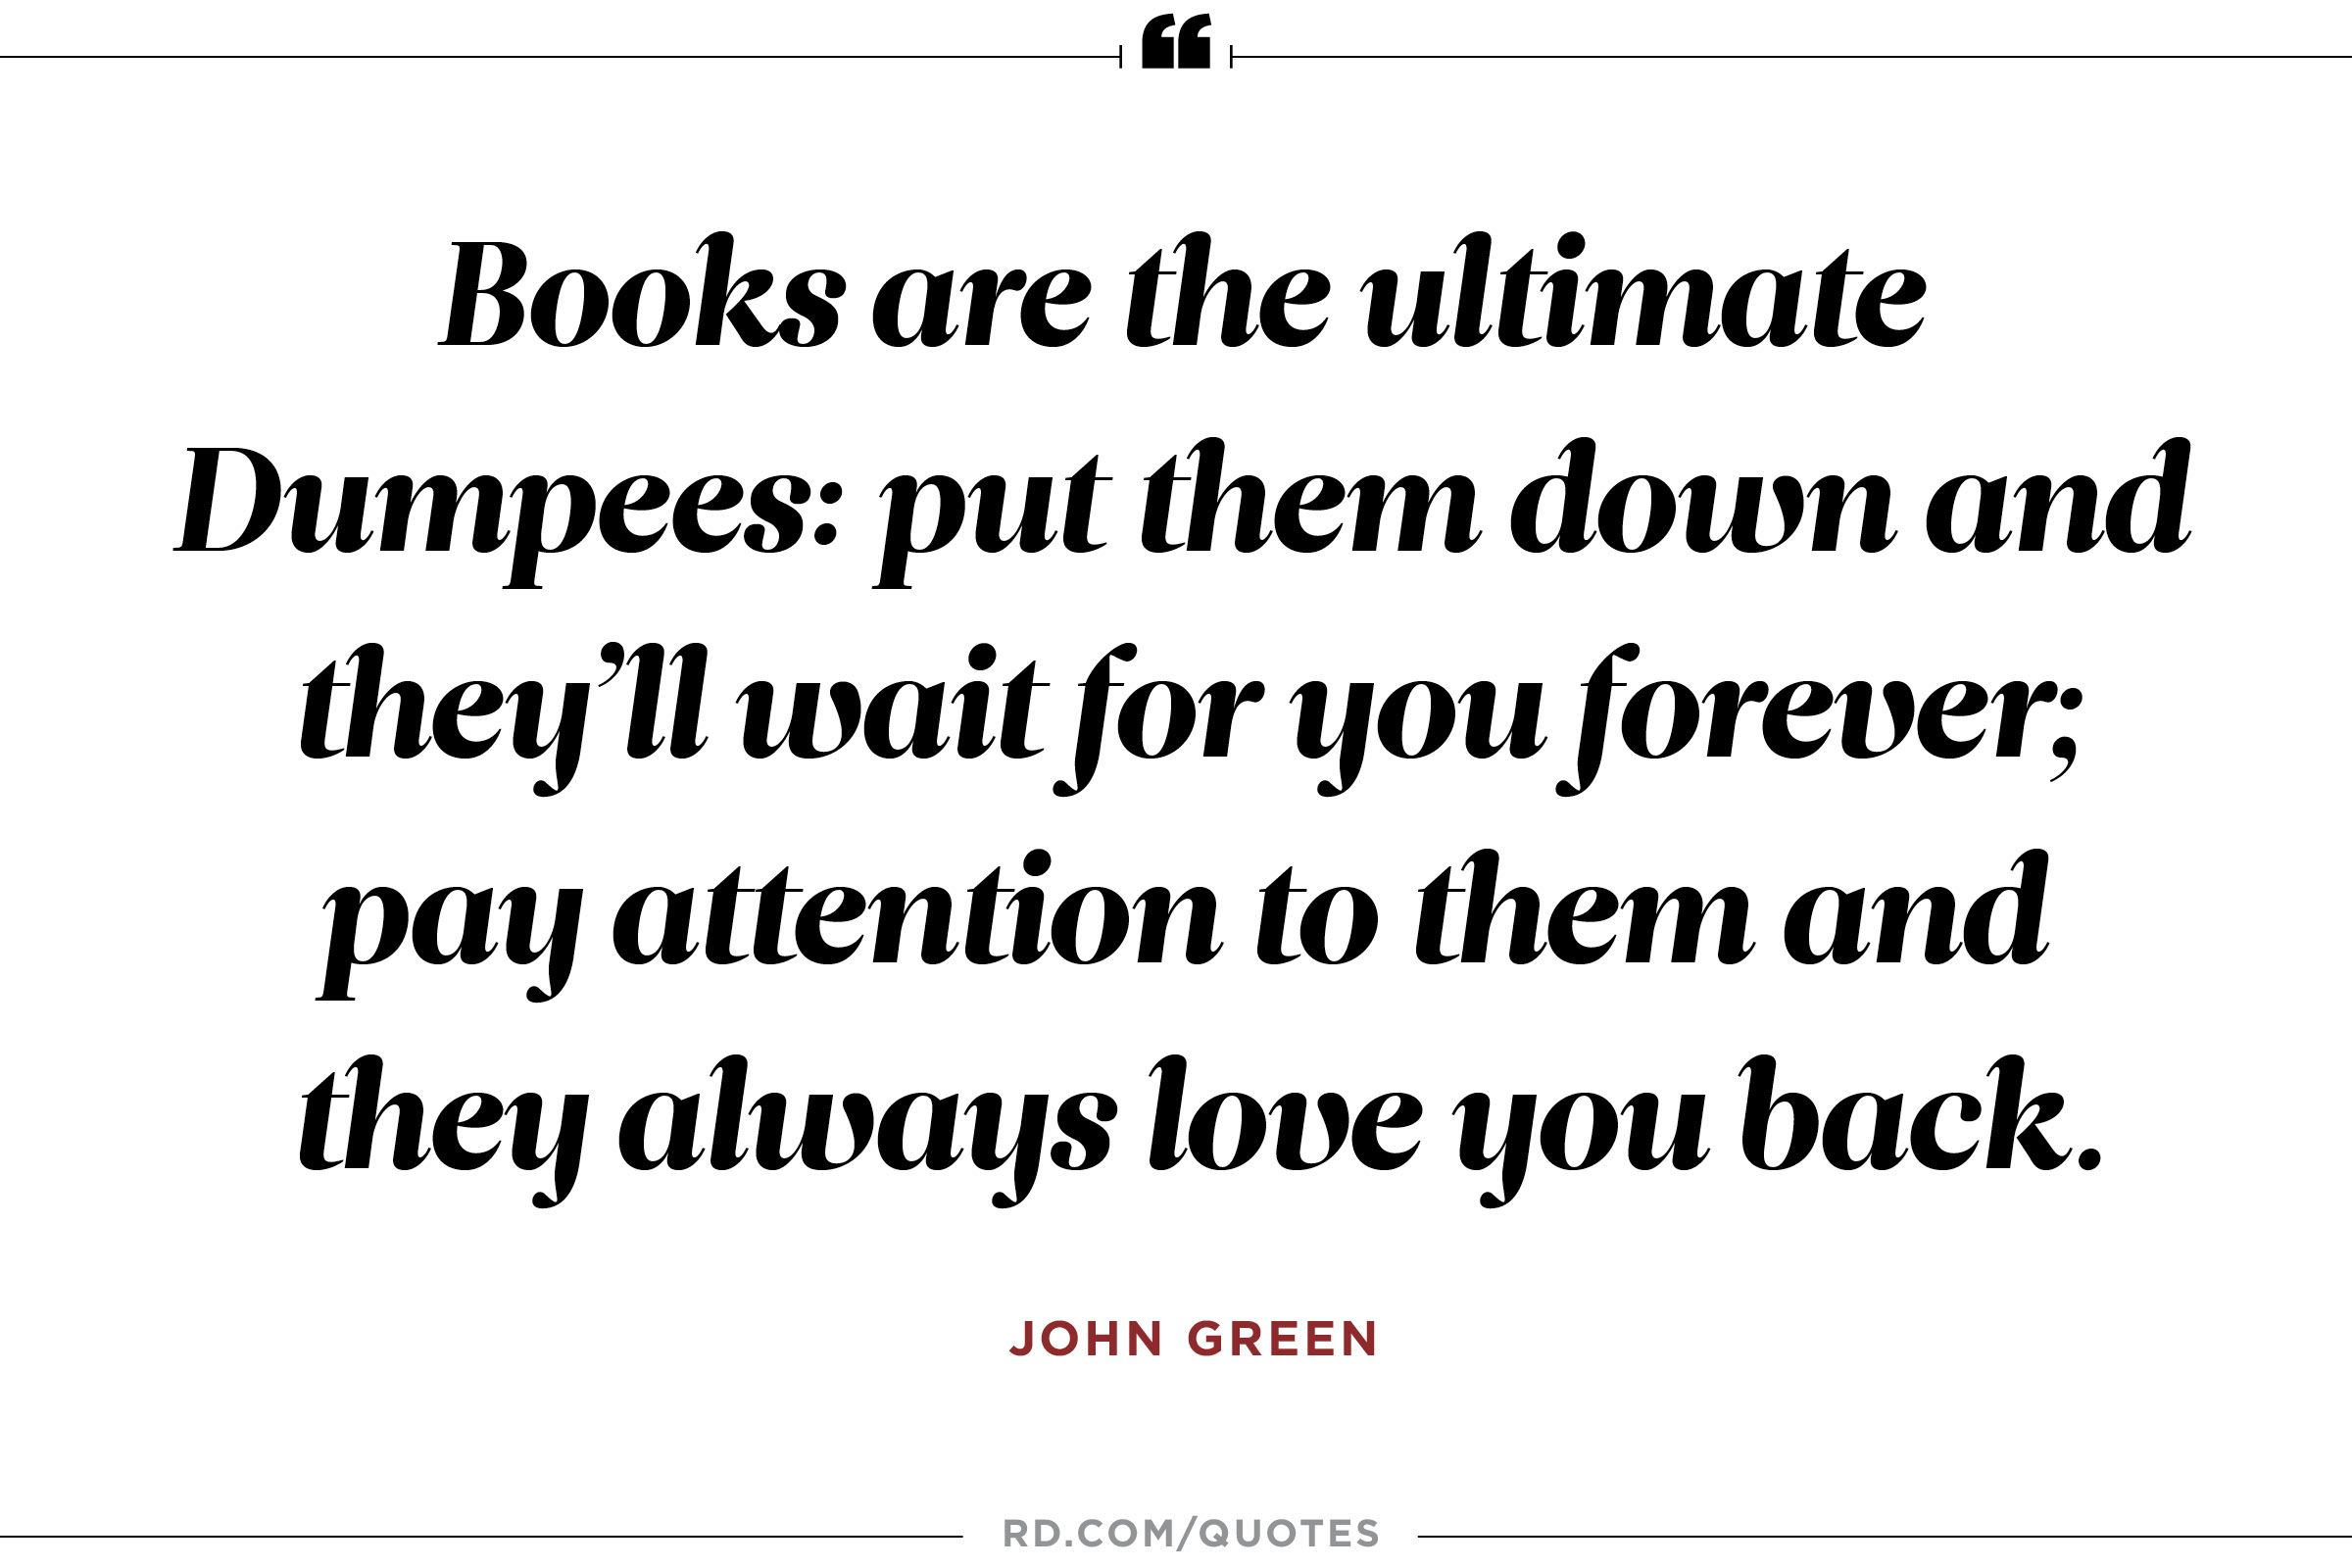 39 Cozy Reading Quotes That Will Make You Crave a Good Book